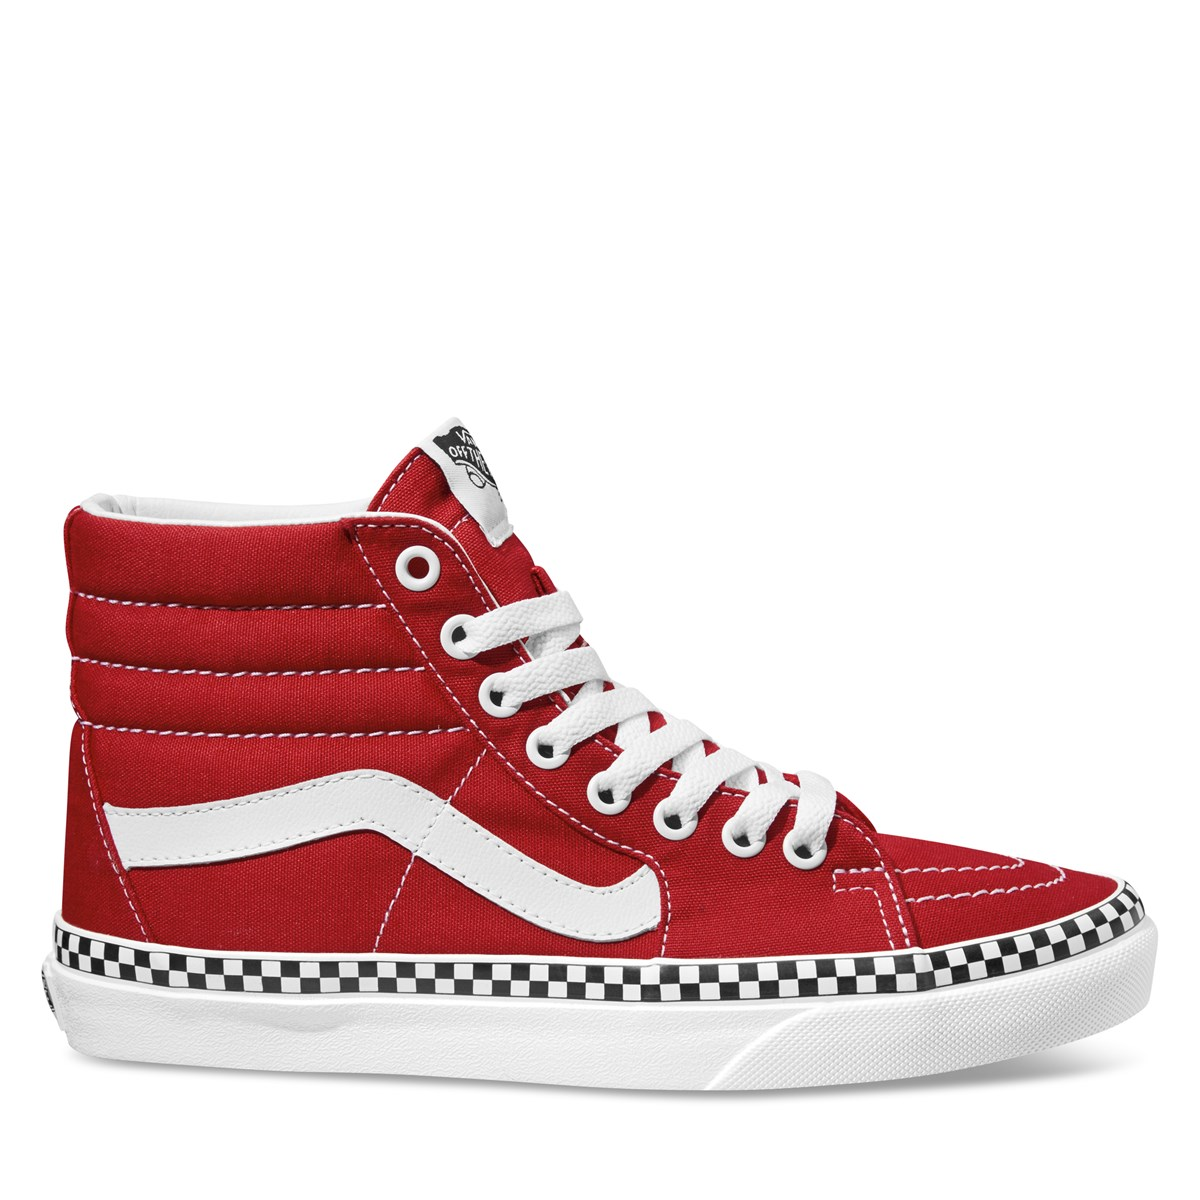 Women's Sk8 Hi  Checkerboard Red Sneaker